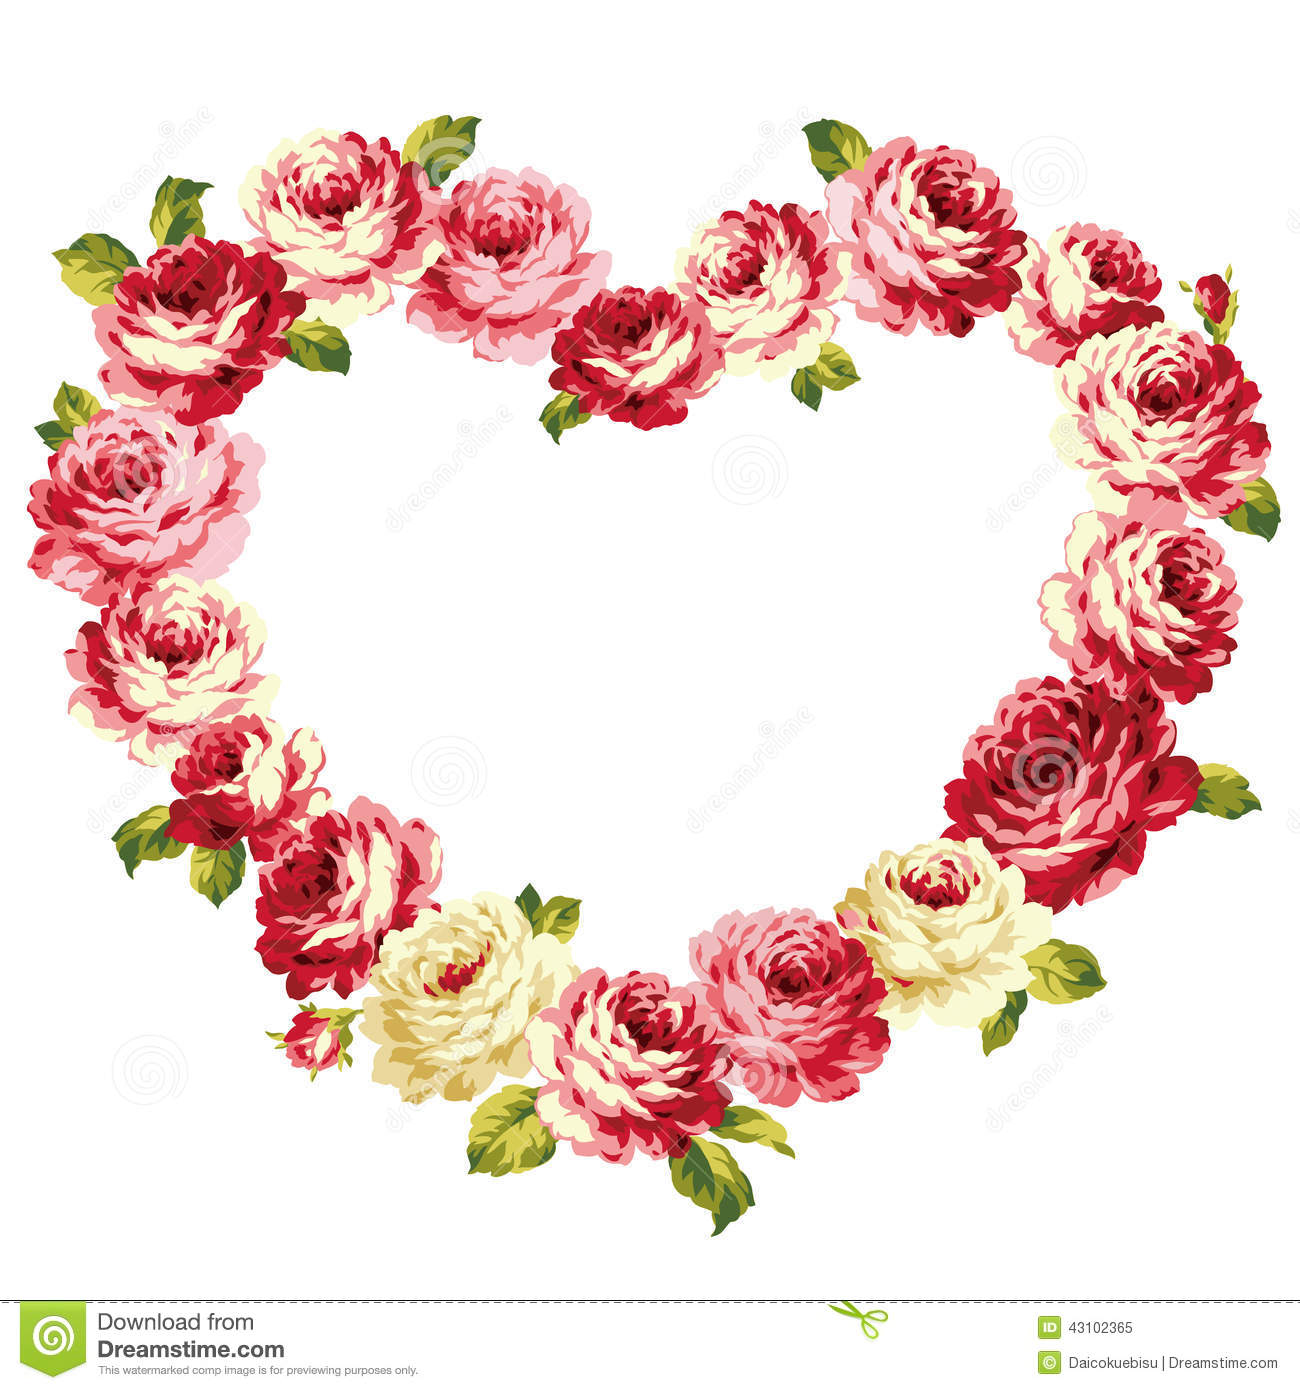 Frame of the rose stock vector. Illustration of corsage - 43102365